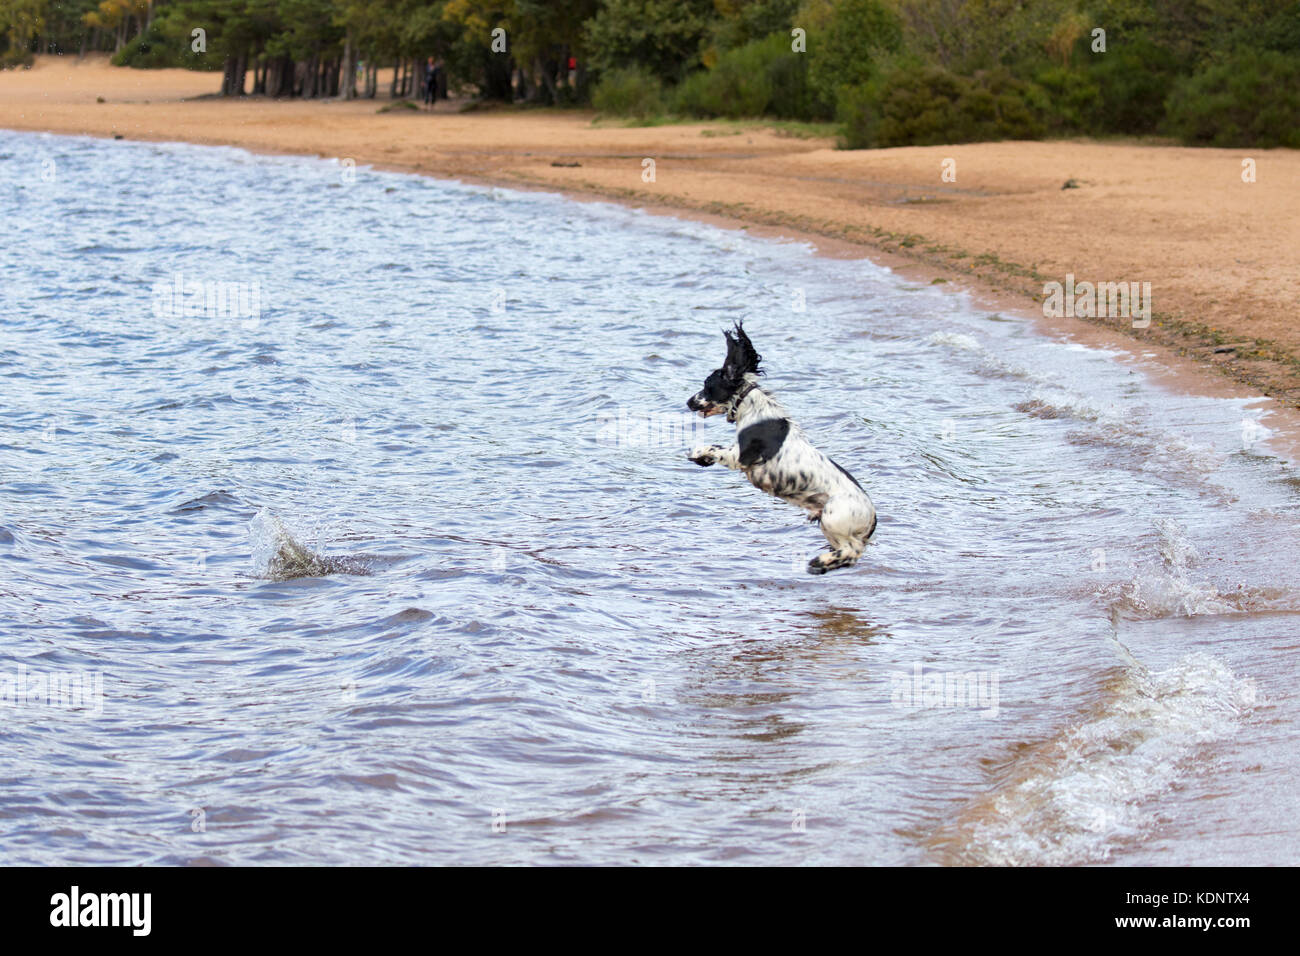 A springer spaniel leaping into icy waters after its ball having been thrown into Loch Morlich by its owner, Scotland, - Stock Image